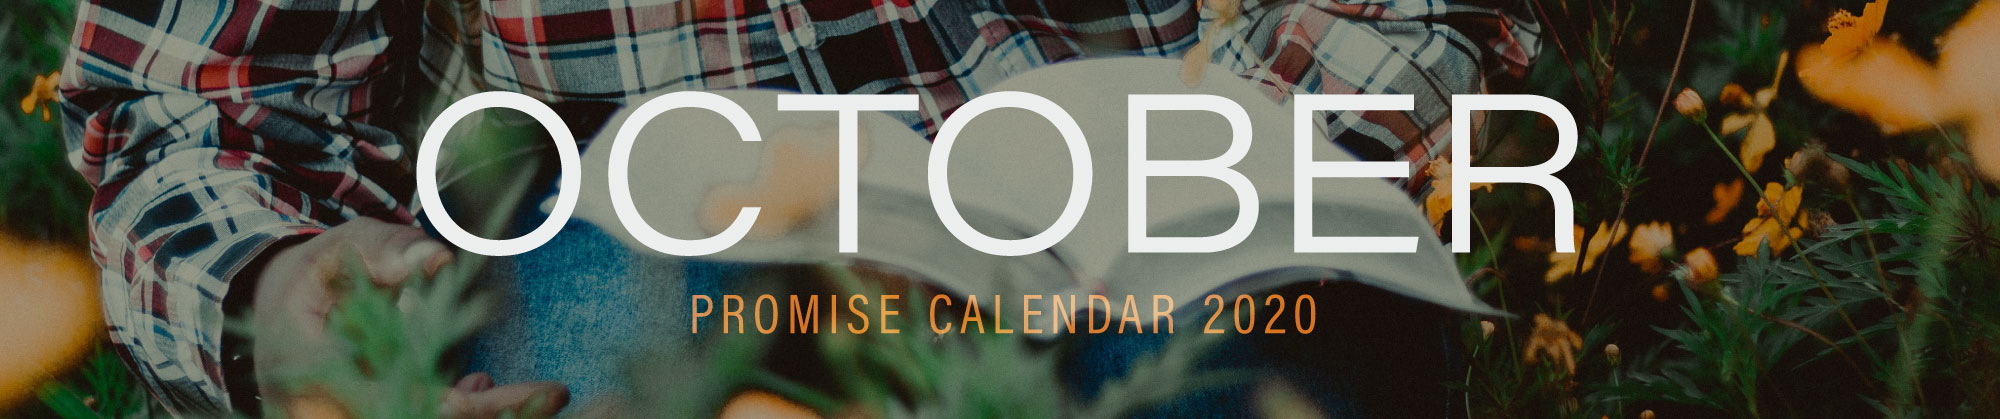 October 2020 Promise Calendar Header